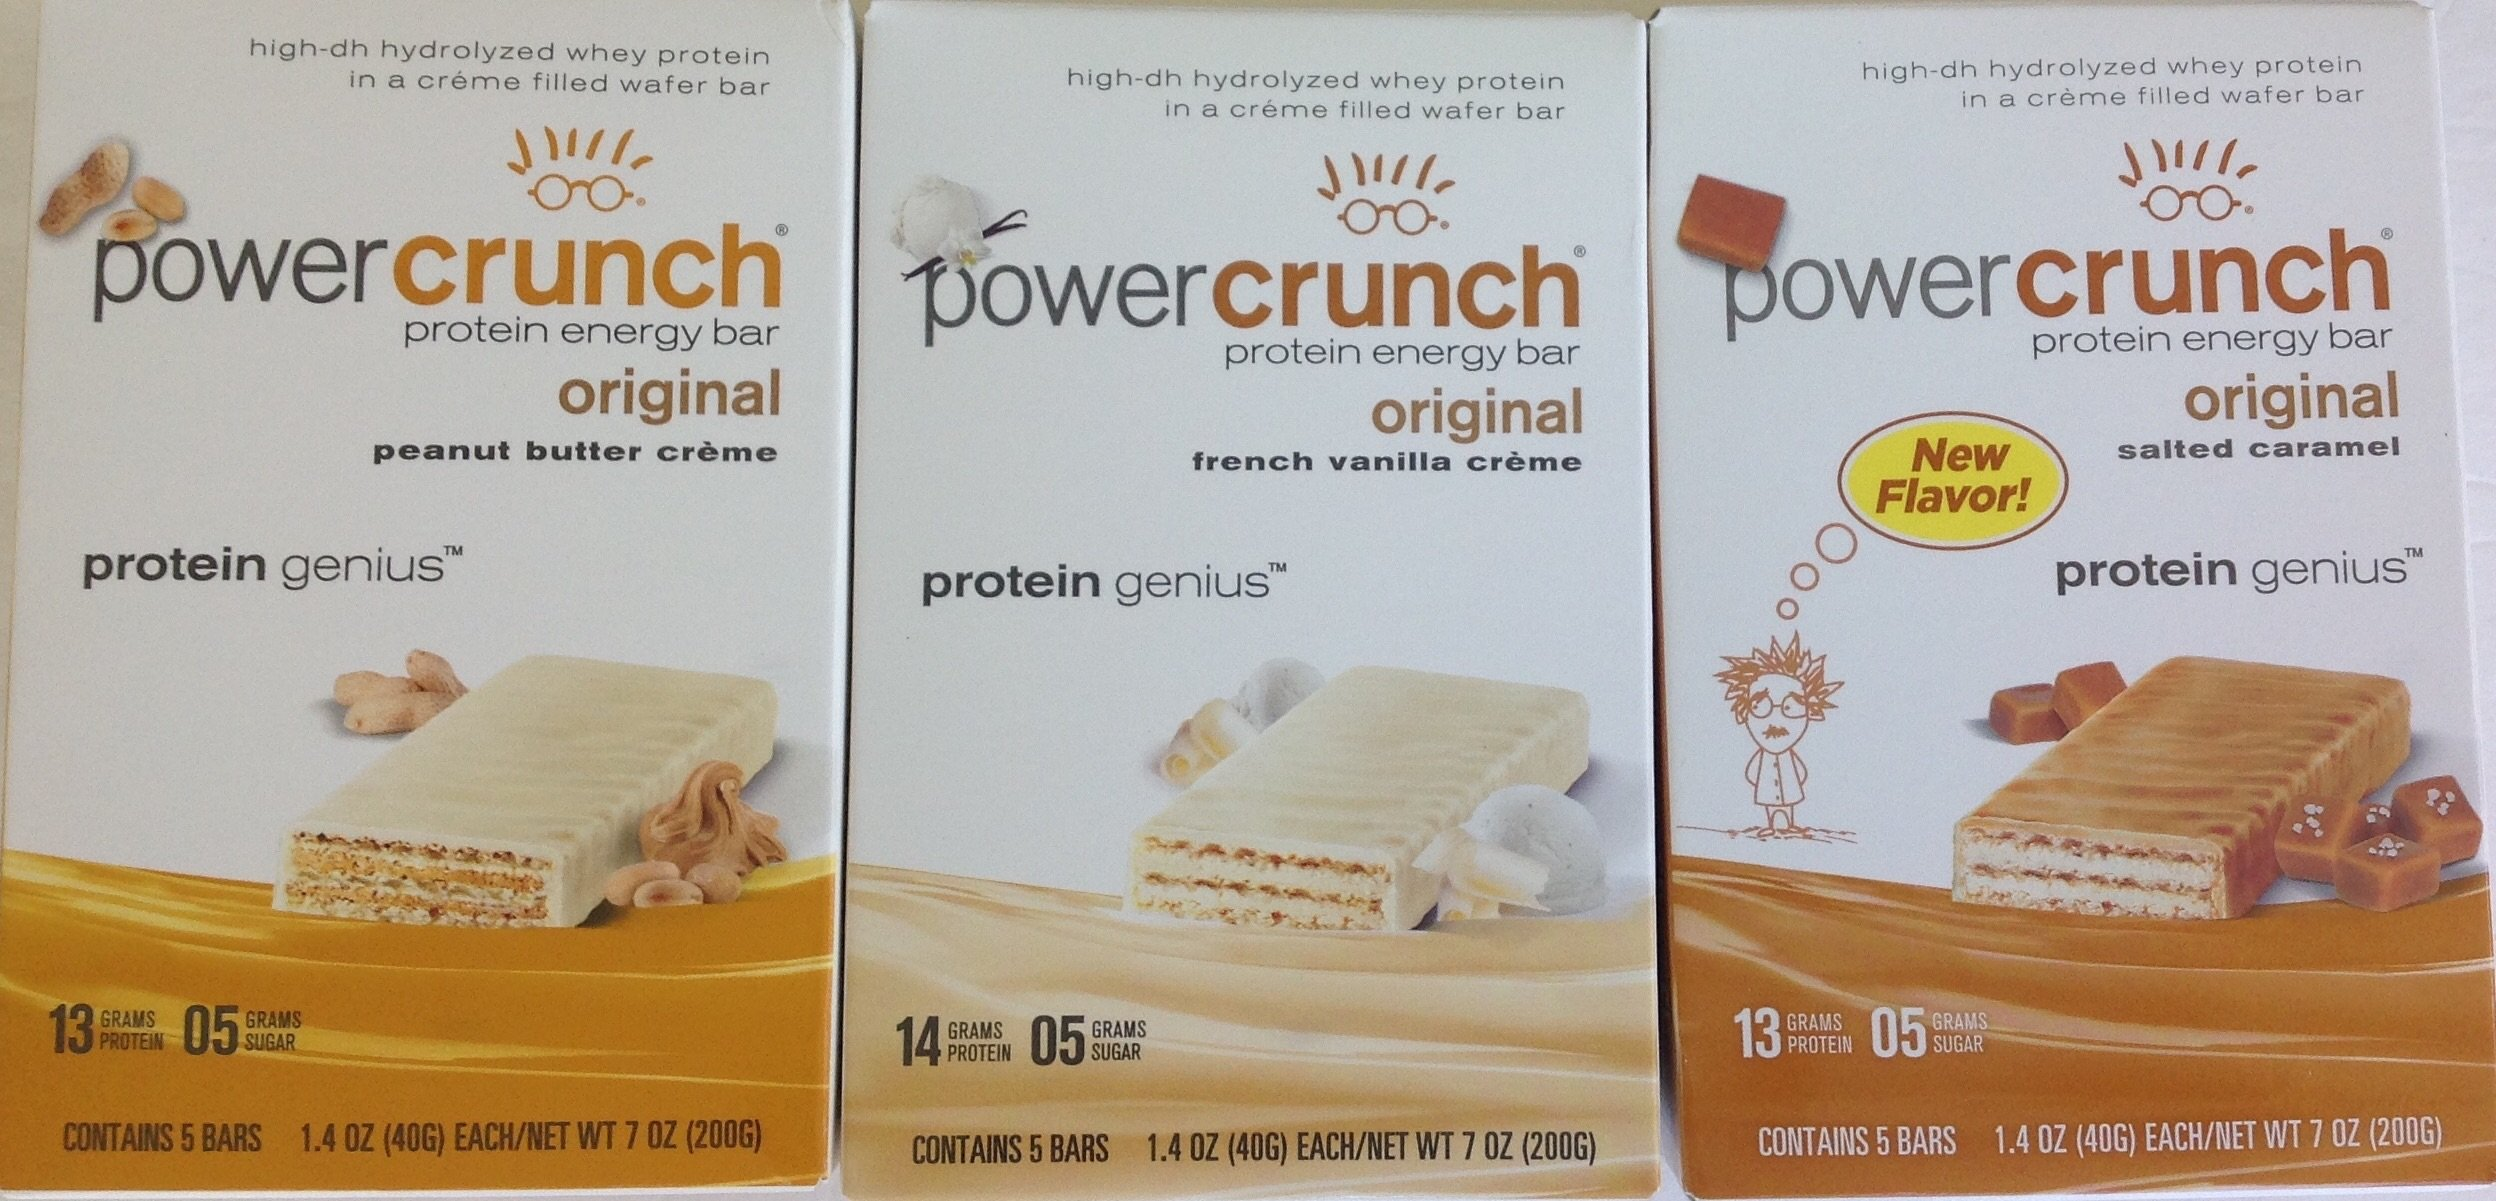 BioNutritional Research Group- Power Crunch Variety 3 Pack: Peanut Butter, French Vanilla Creme, and Salted Caramel